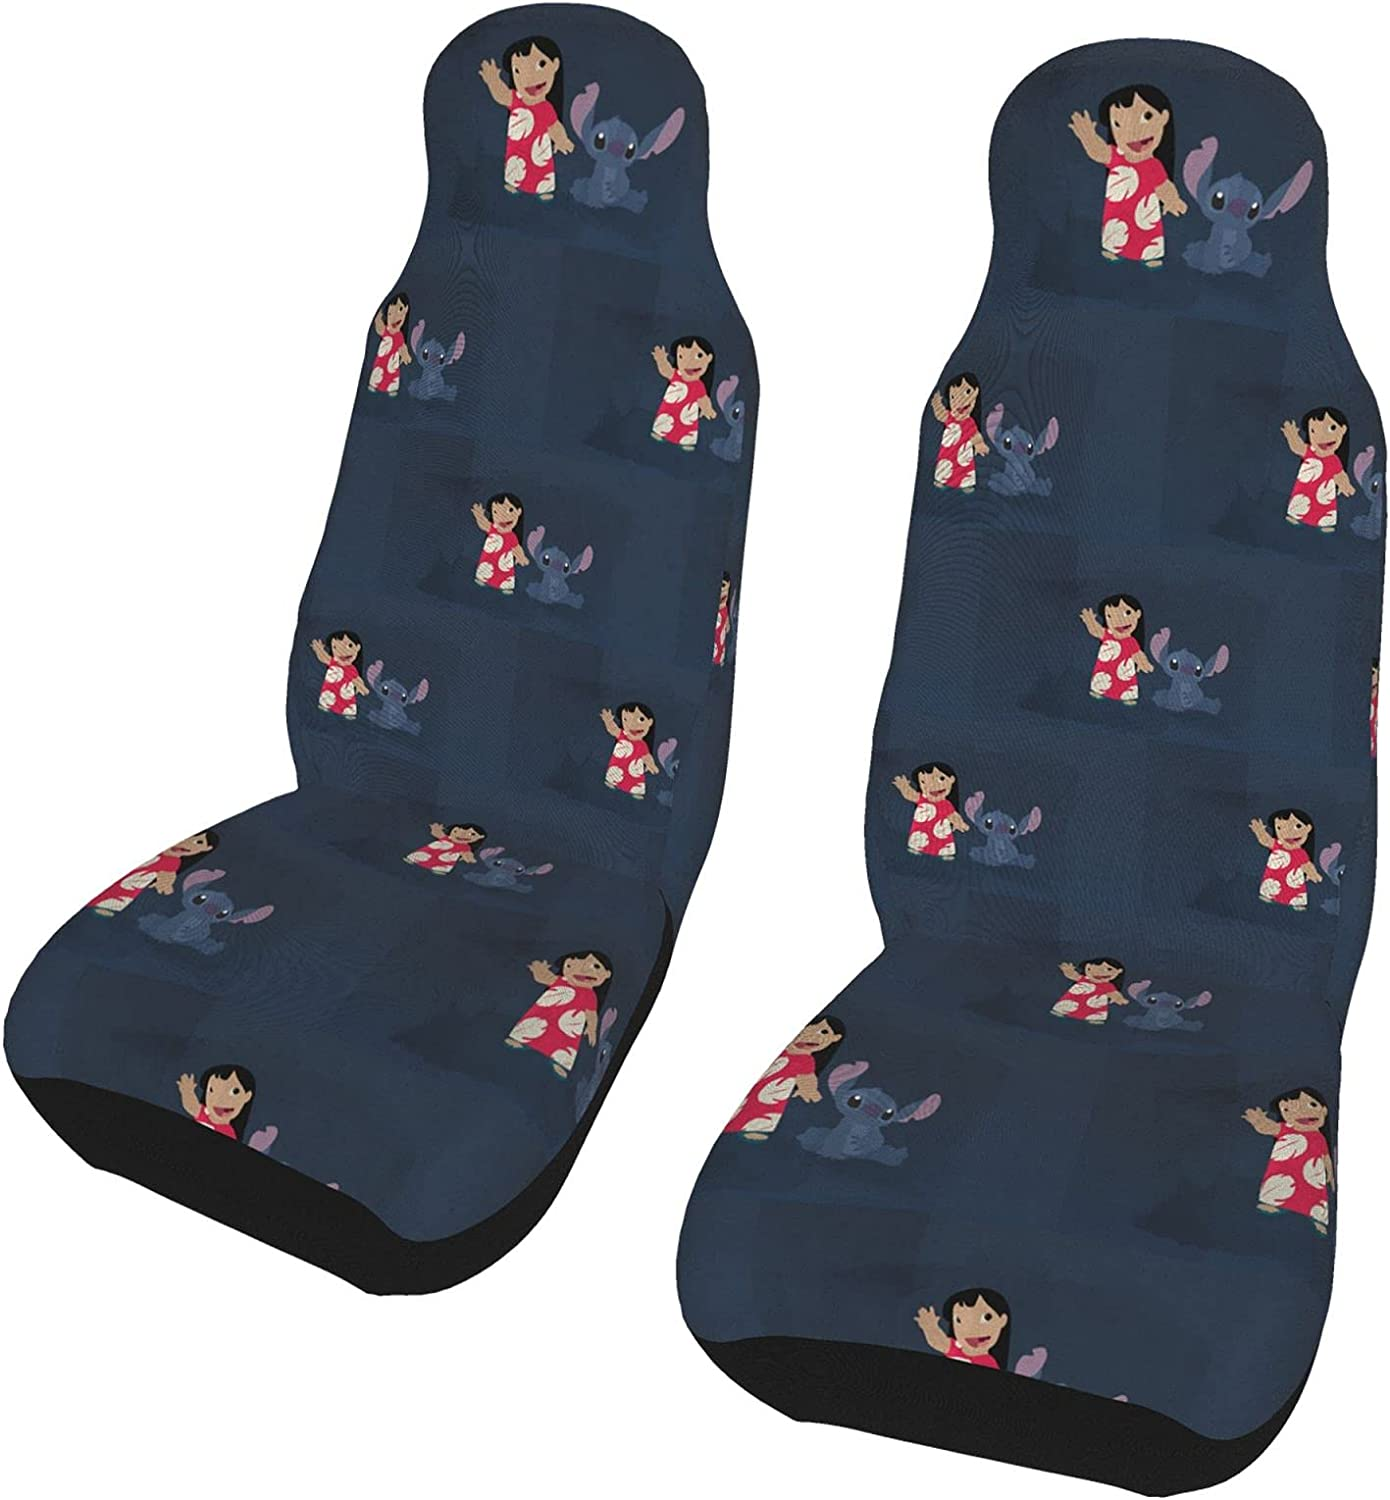 Meojiao Anime Lilo Stitch 2 Pieces Set Cat Covers Challenge Ranking TOP4 the lowest price Seat Accesso